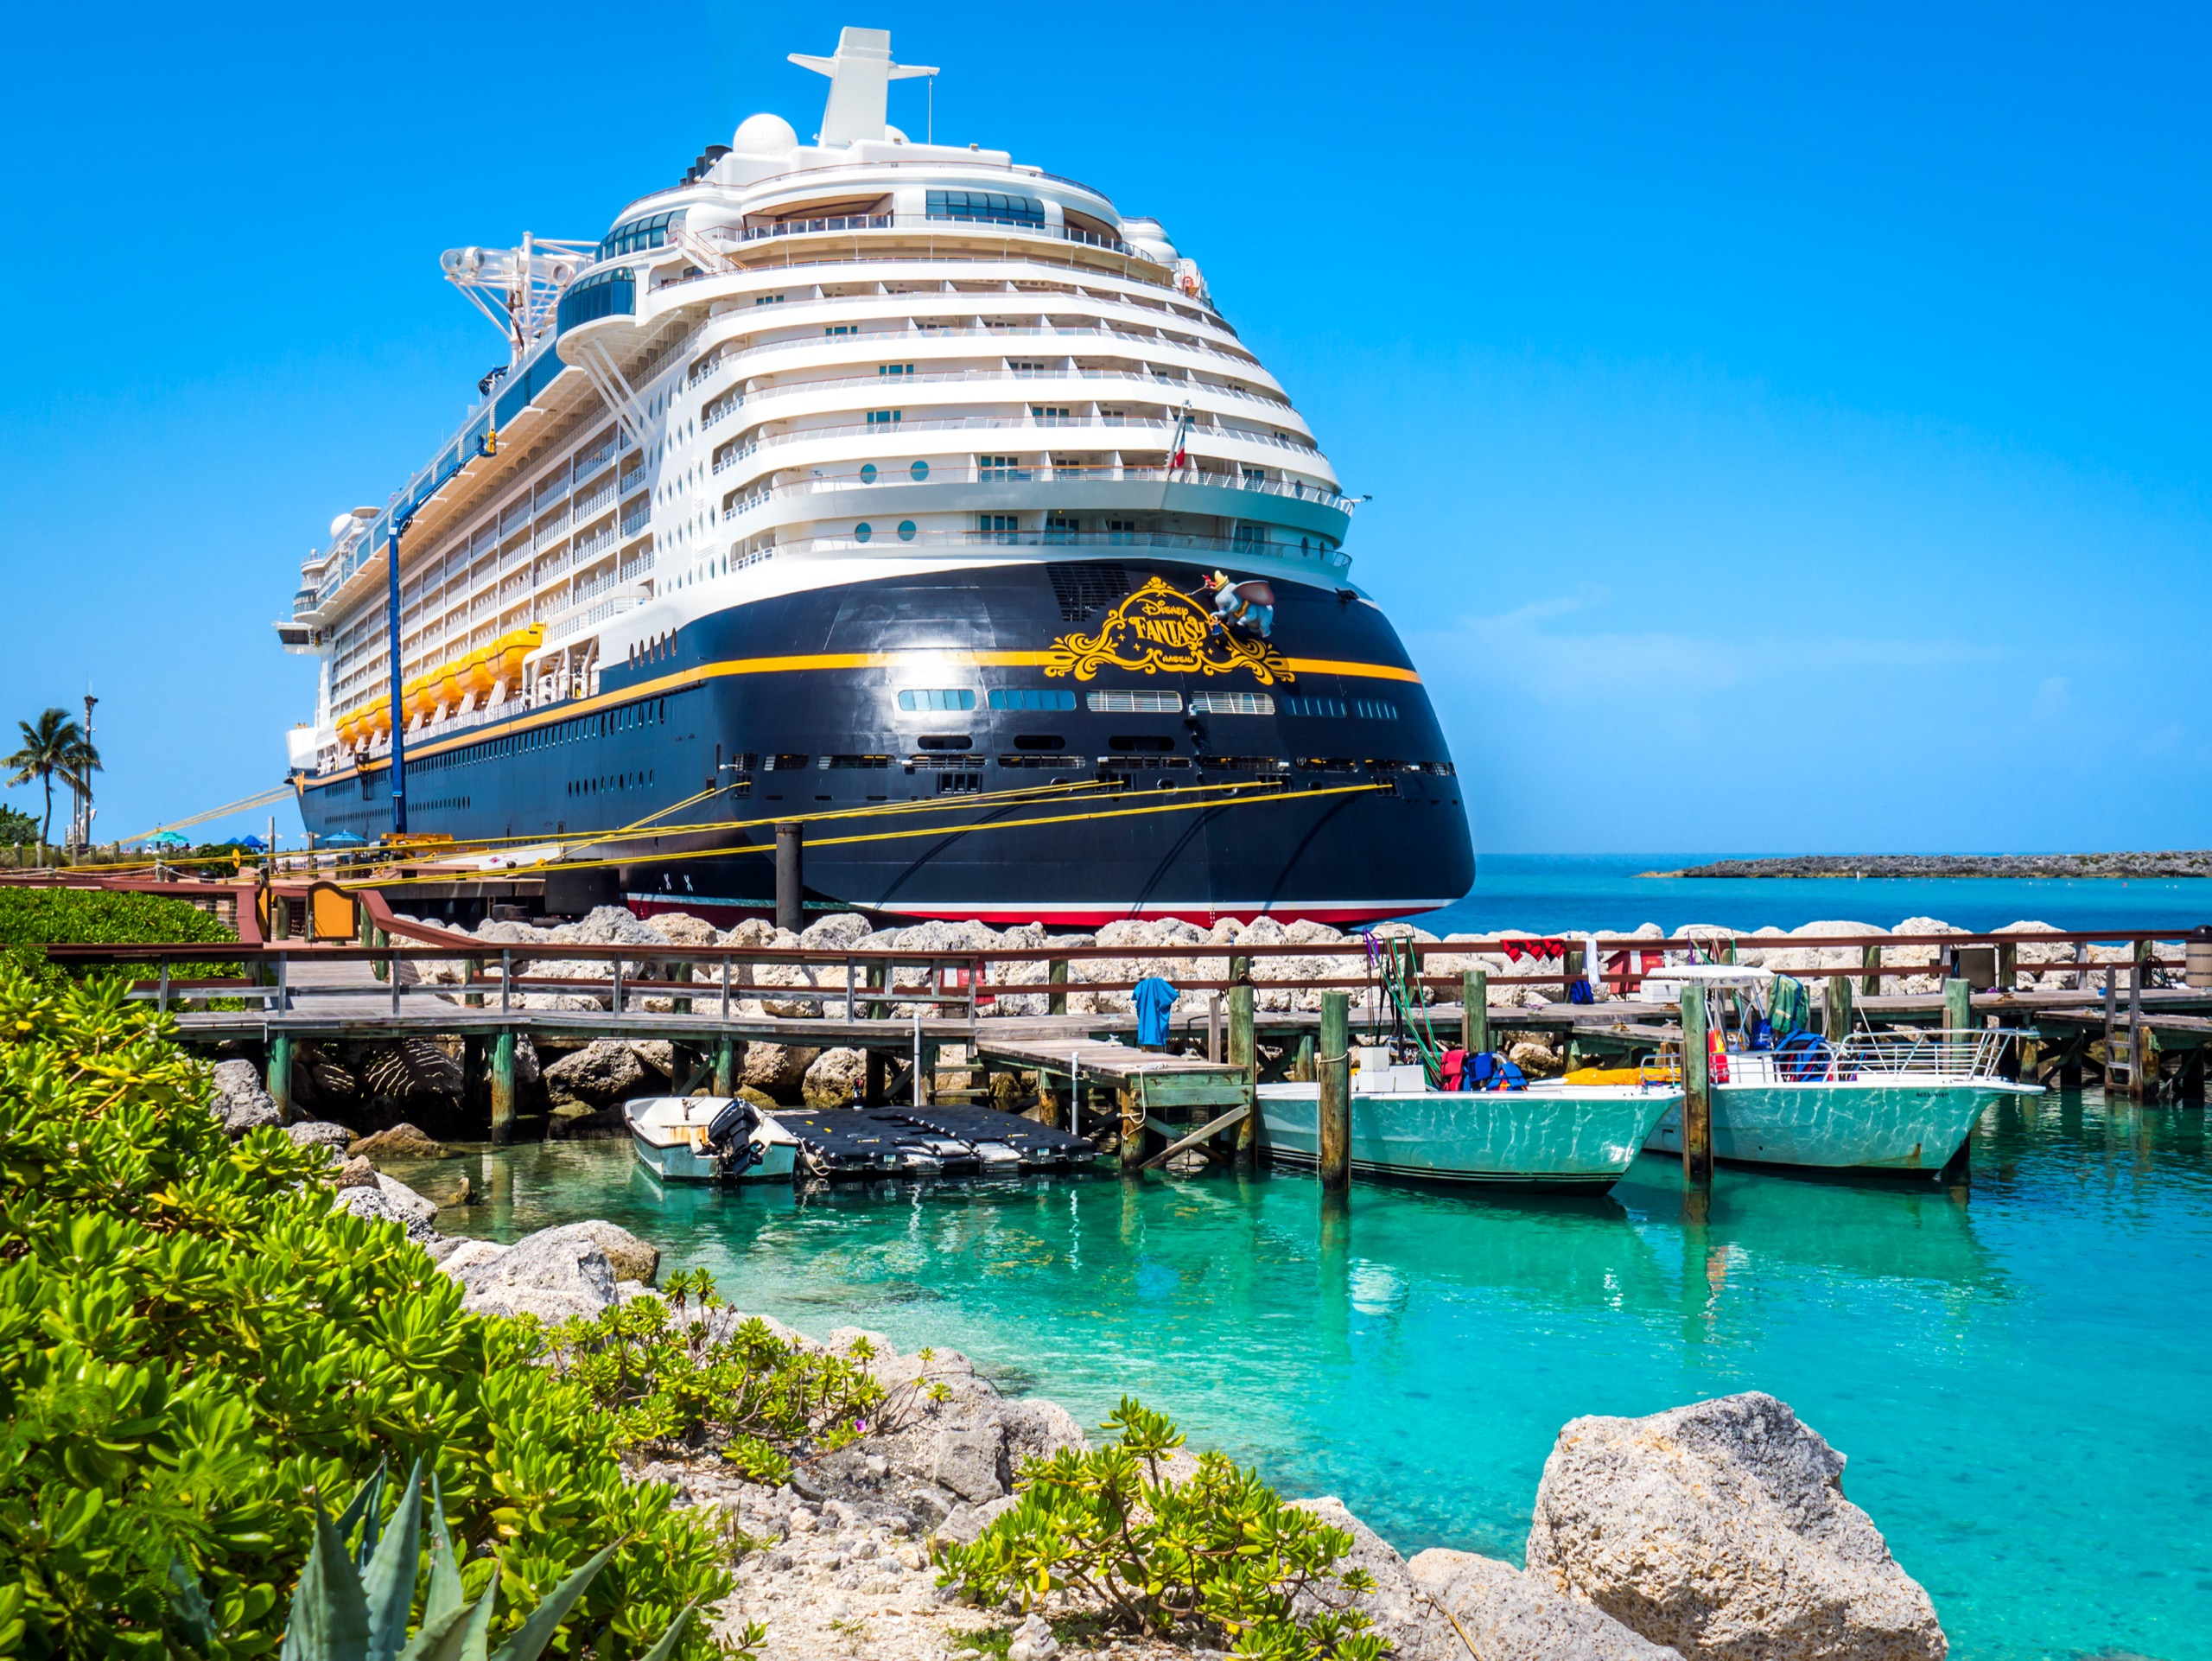 cruise lingo The Disney Fantasy luxury cruise ship sits docked at their private island, Castaway Cay. The water is blue and green and it's a clear day with blue a sky